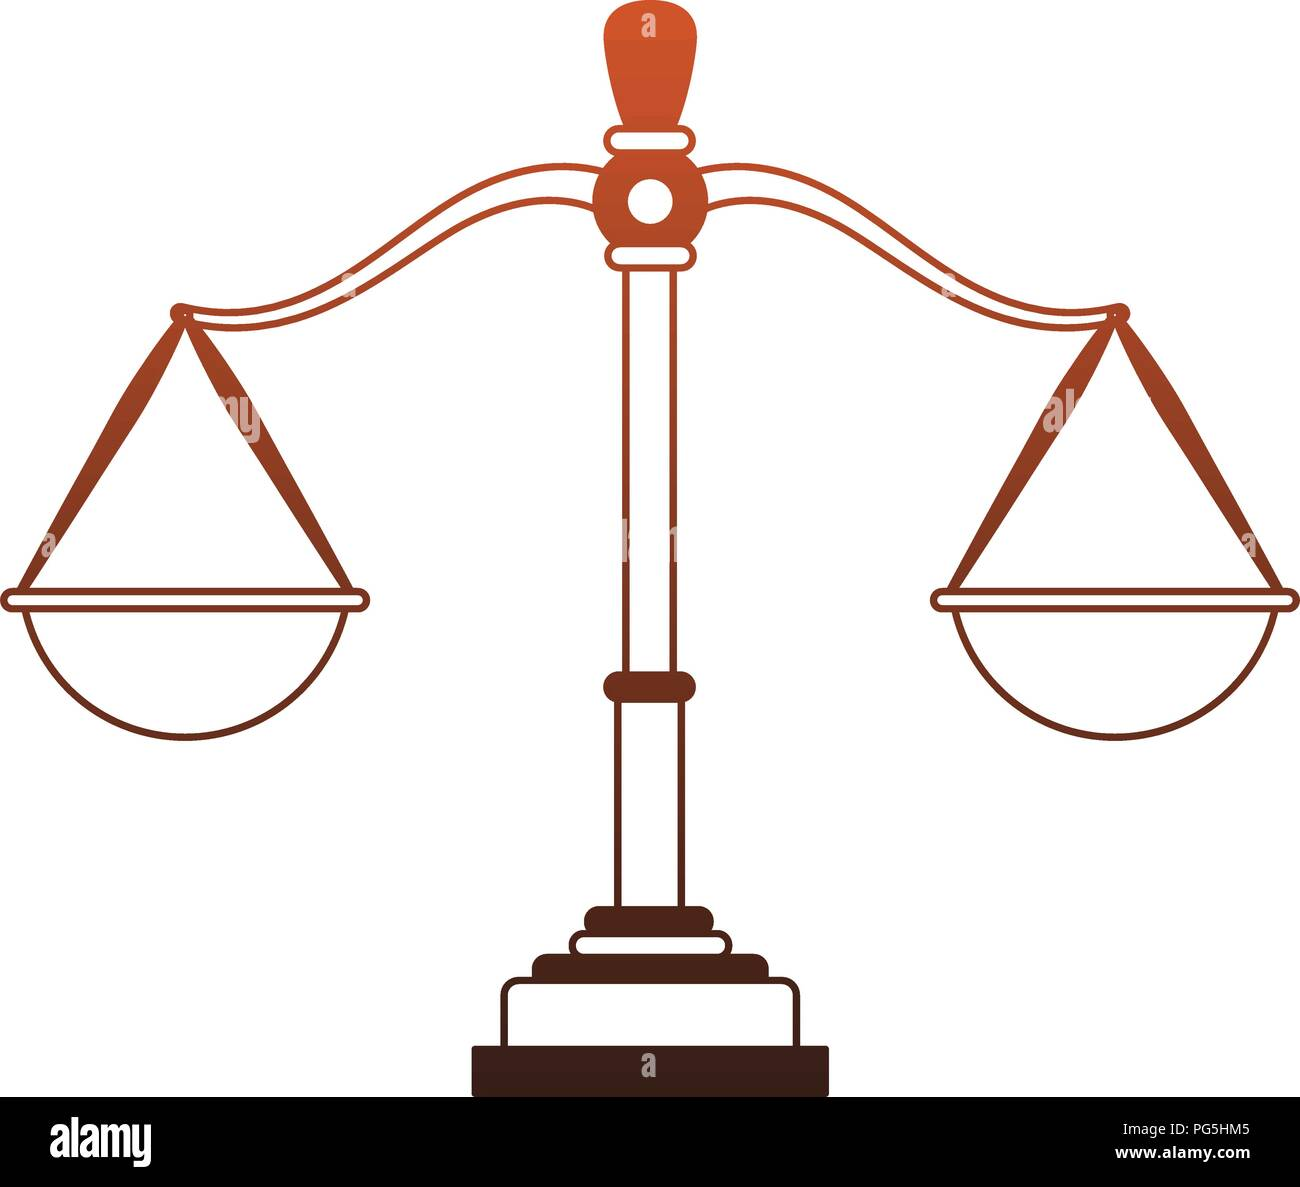 Justice balance symbol red lines - Stock Vector